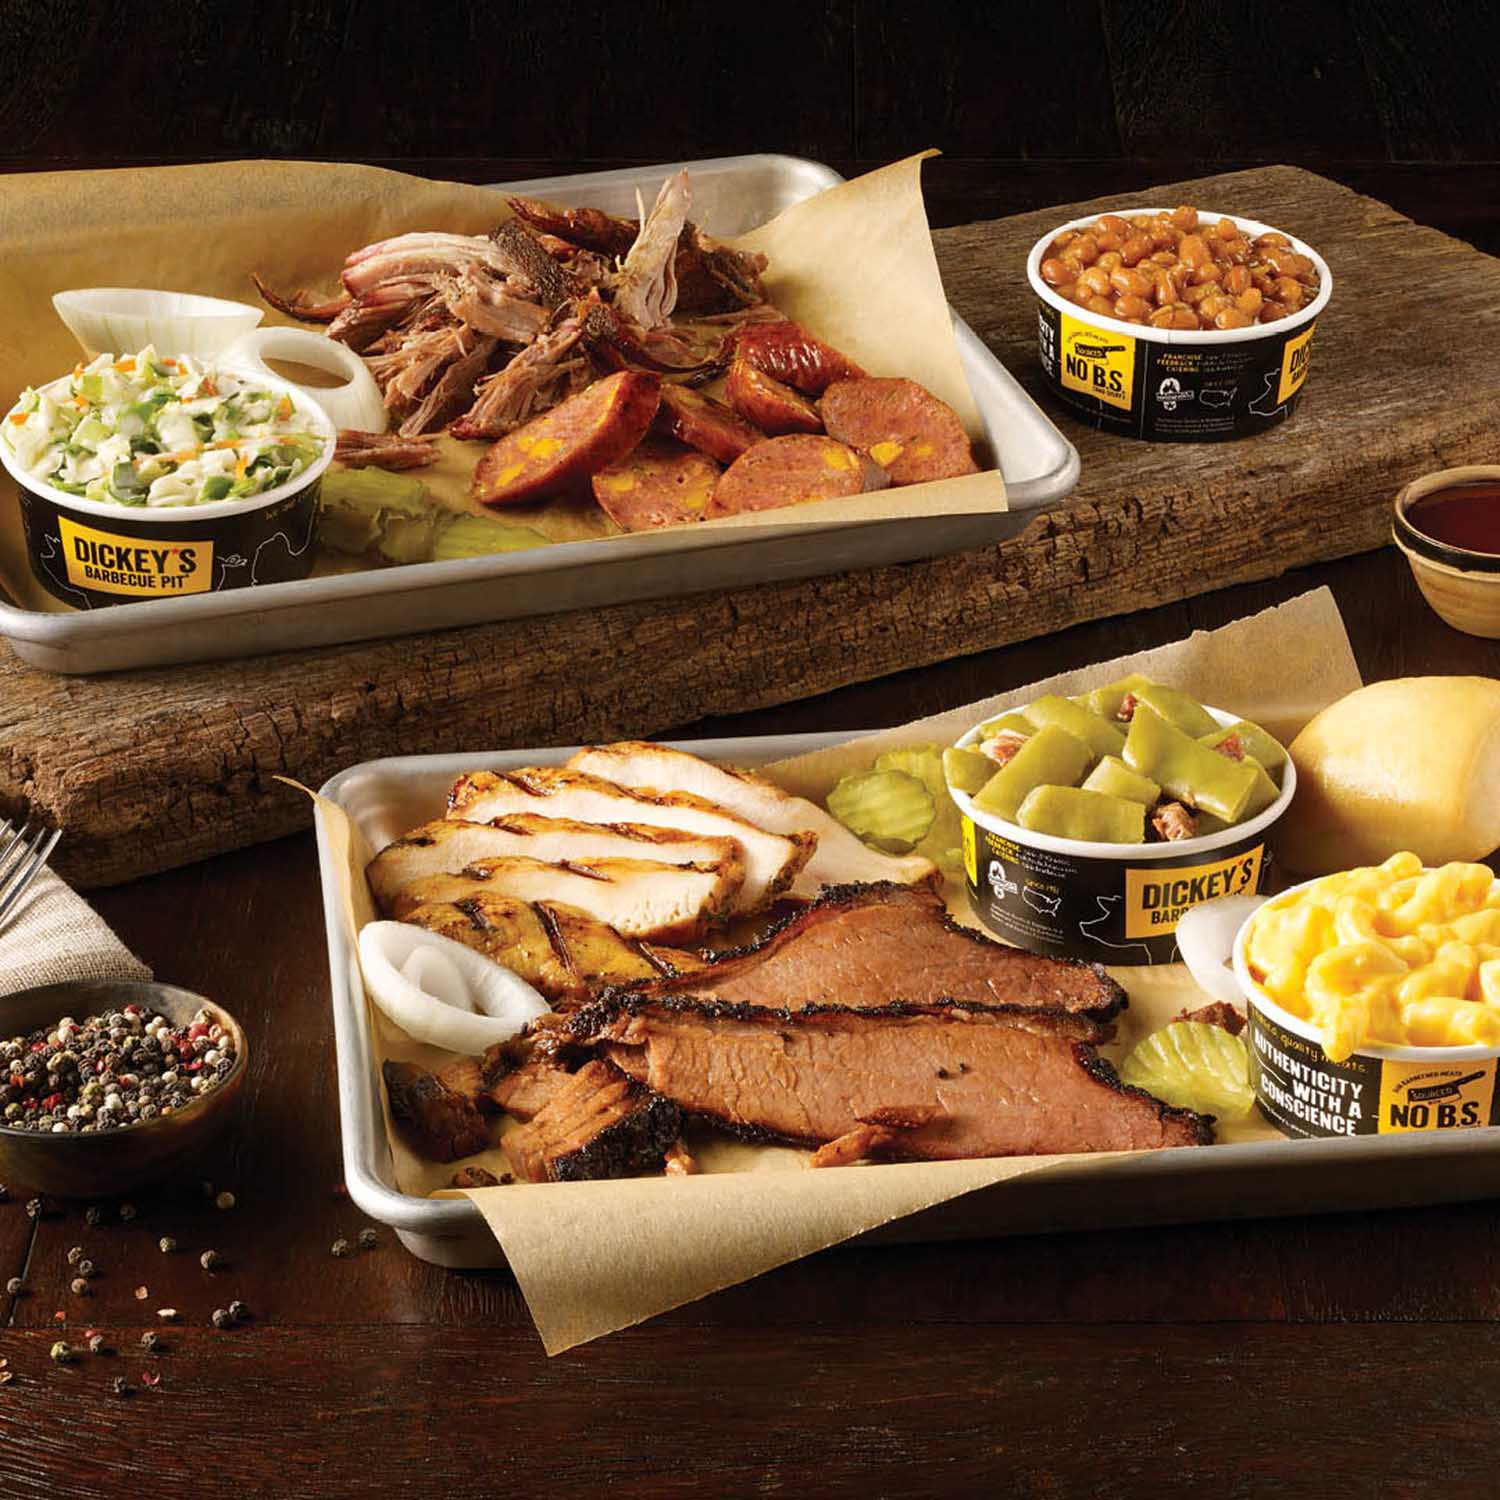 Dickey's Barbecue Pit Owner Brings New Location to Pearland, TX